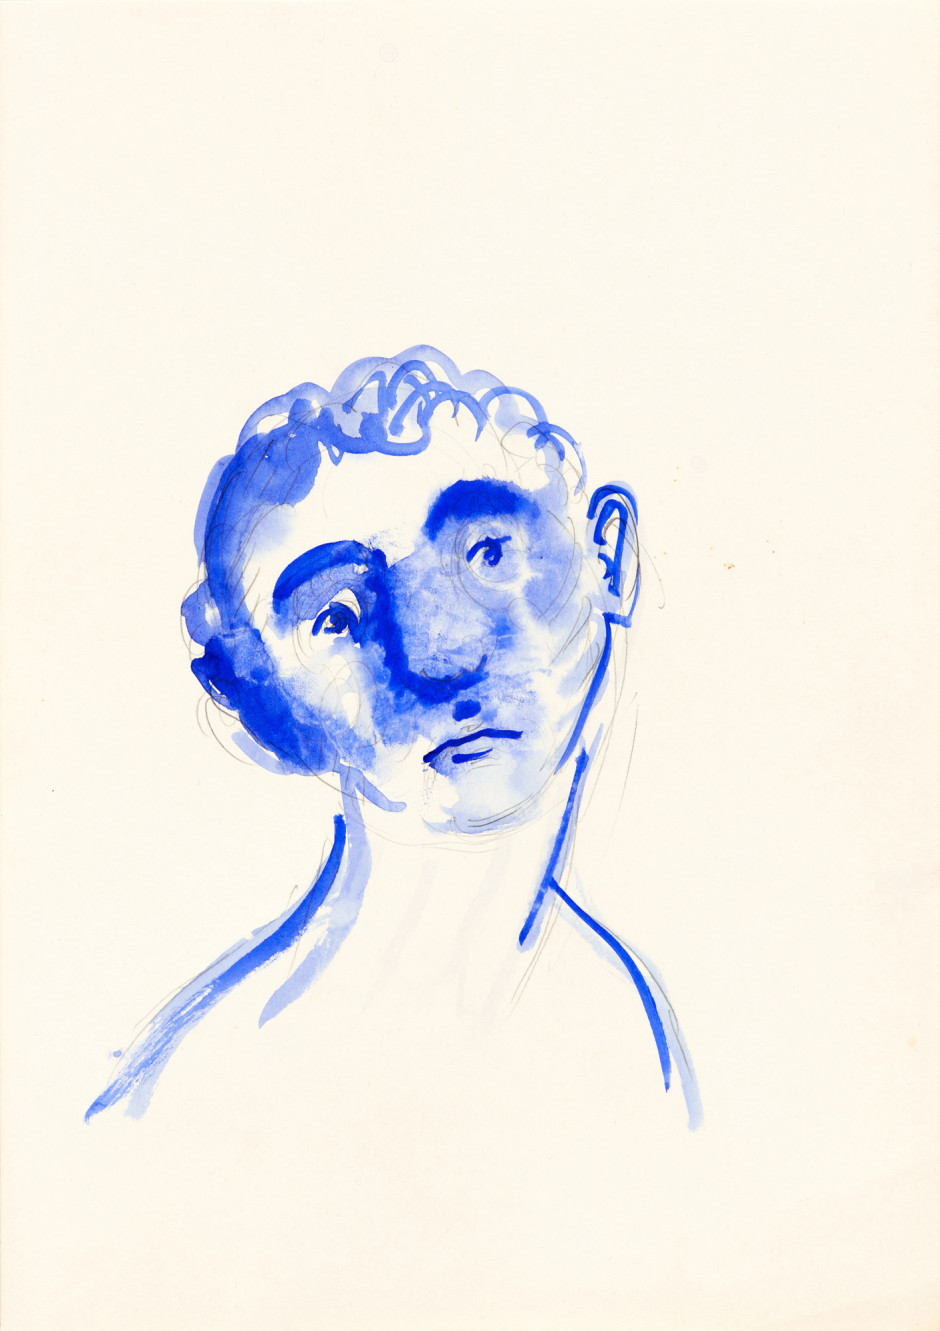 Blueface, 2001  watercolour and pencil on paper  site size: 30 x 21 cm / 11 ¾ x 8 ¼ in frame size: 49 x 40.5 x 2.5 cm / 19 ¼ x 16 x 1 in